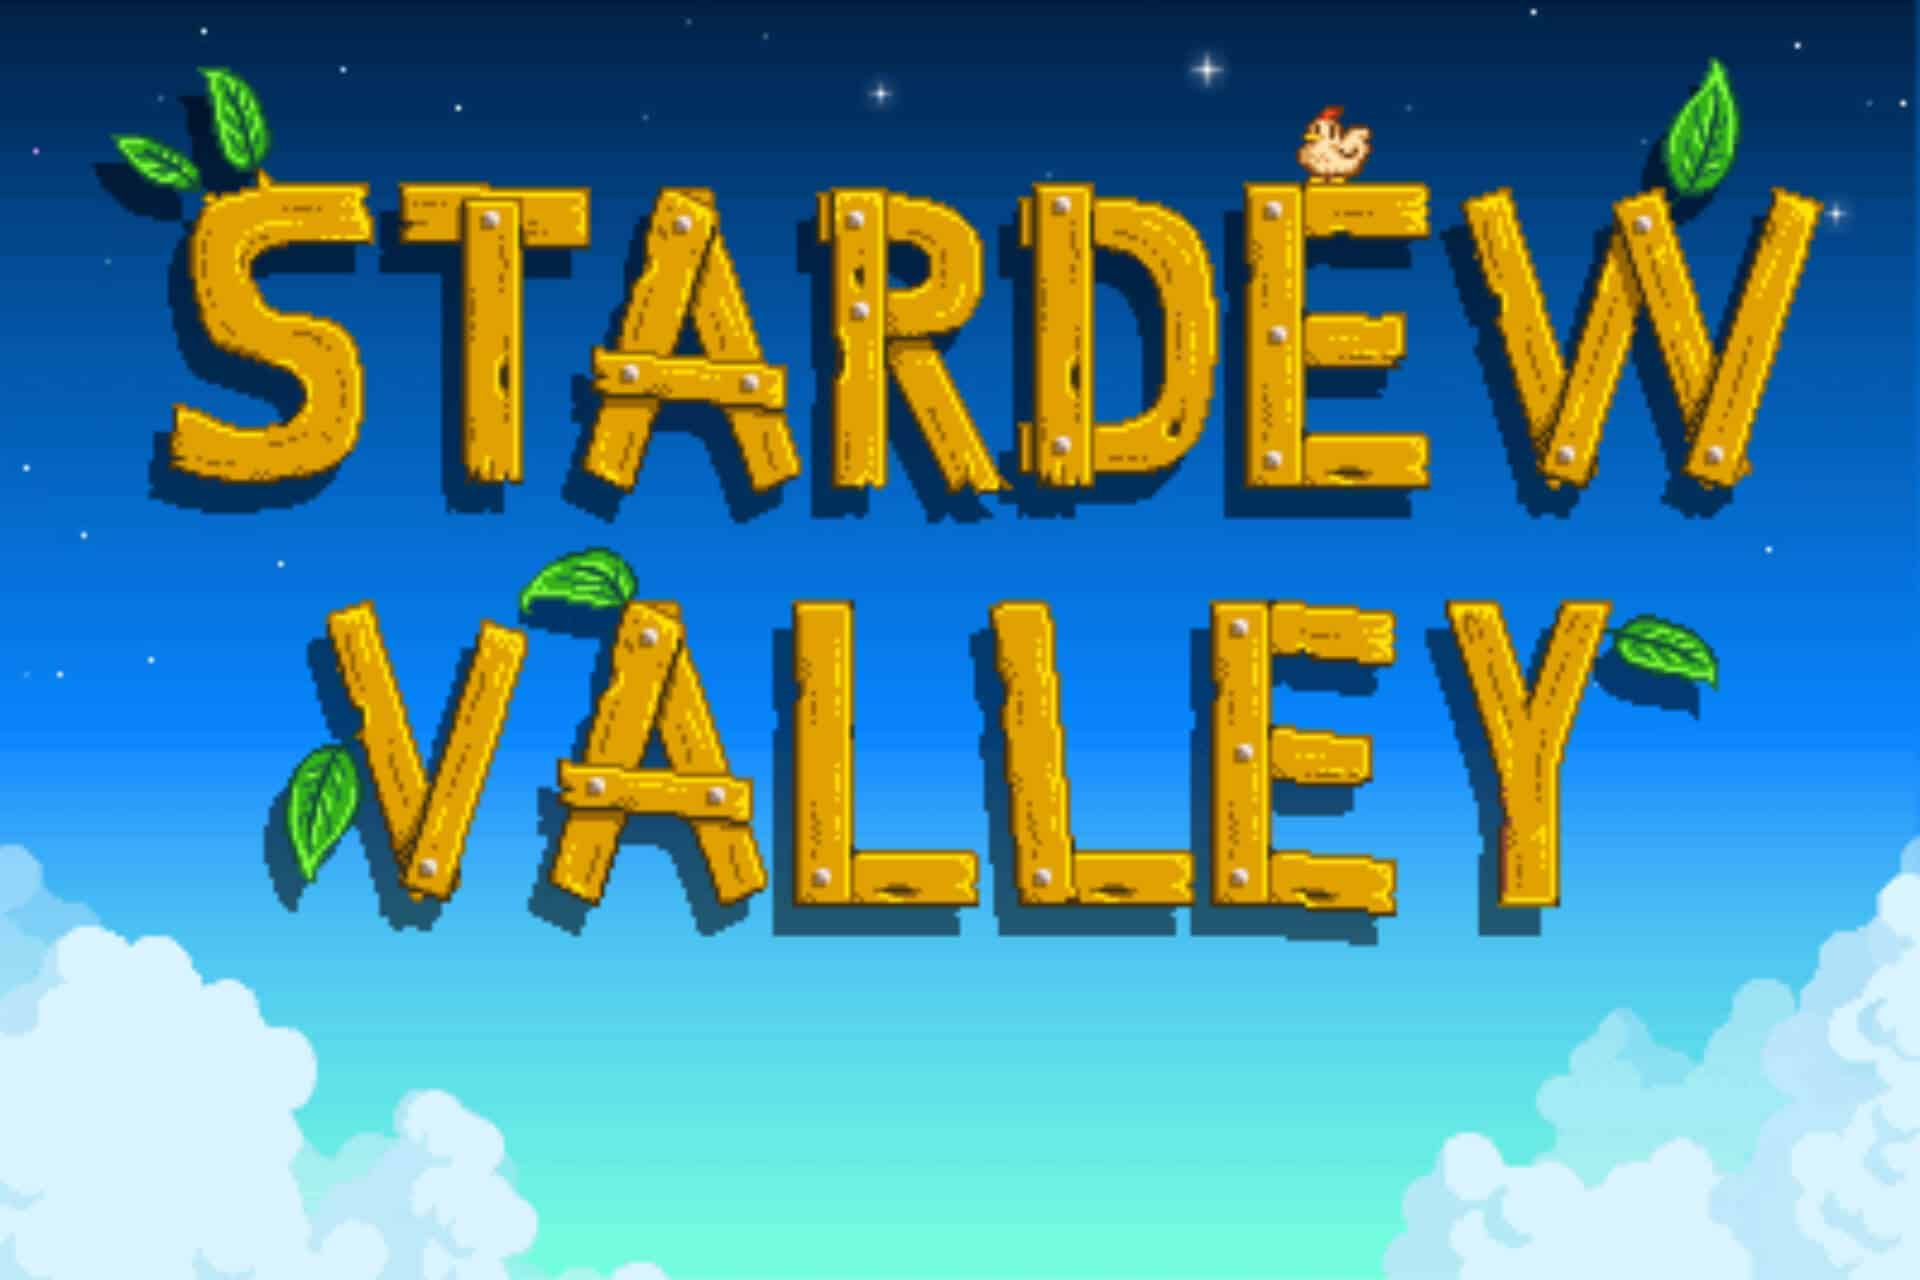 stardew valley - main